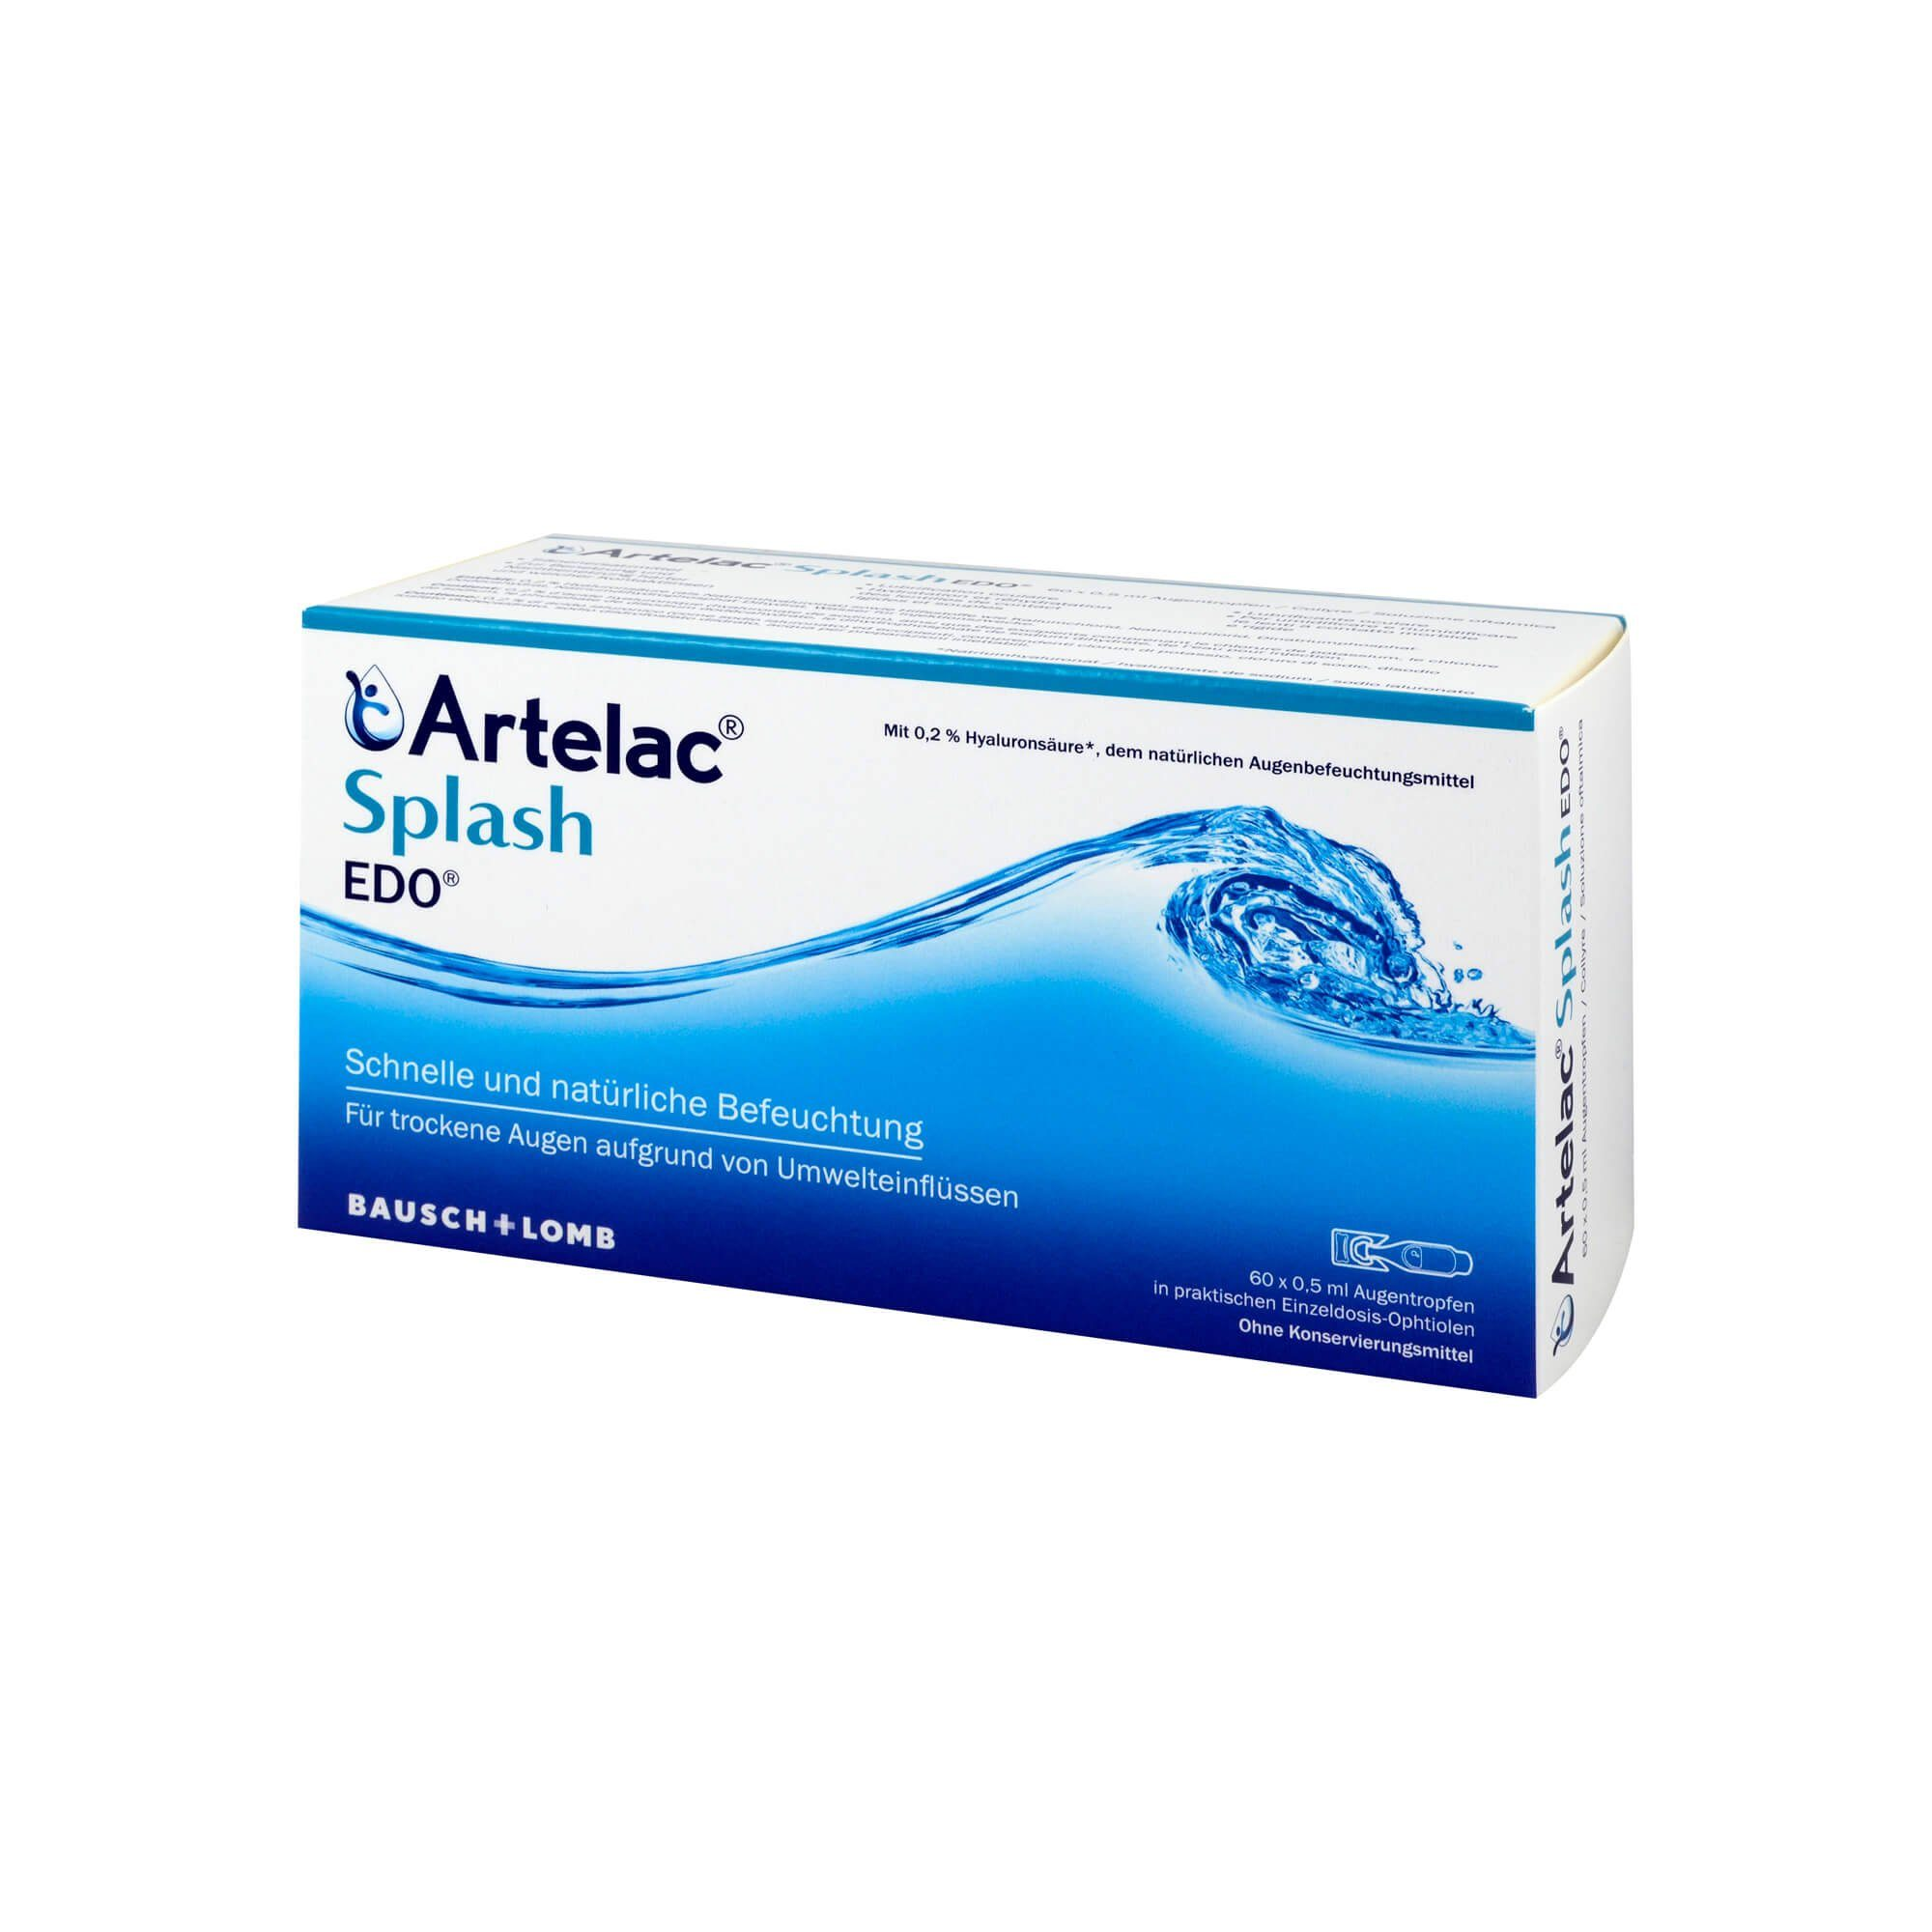 Artelac Splash EDO , 60X0.5 ml